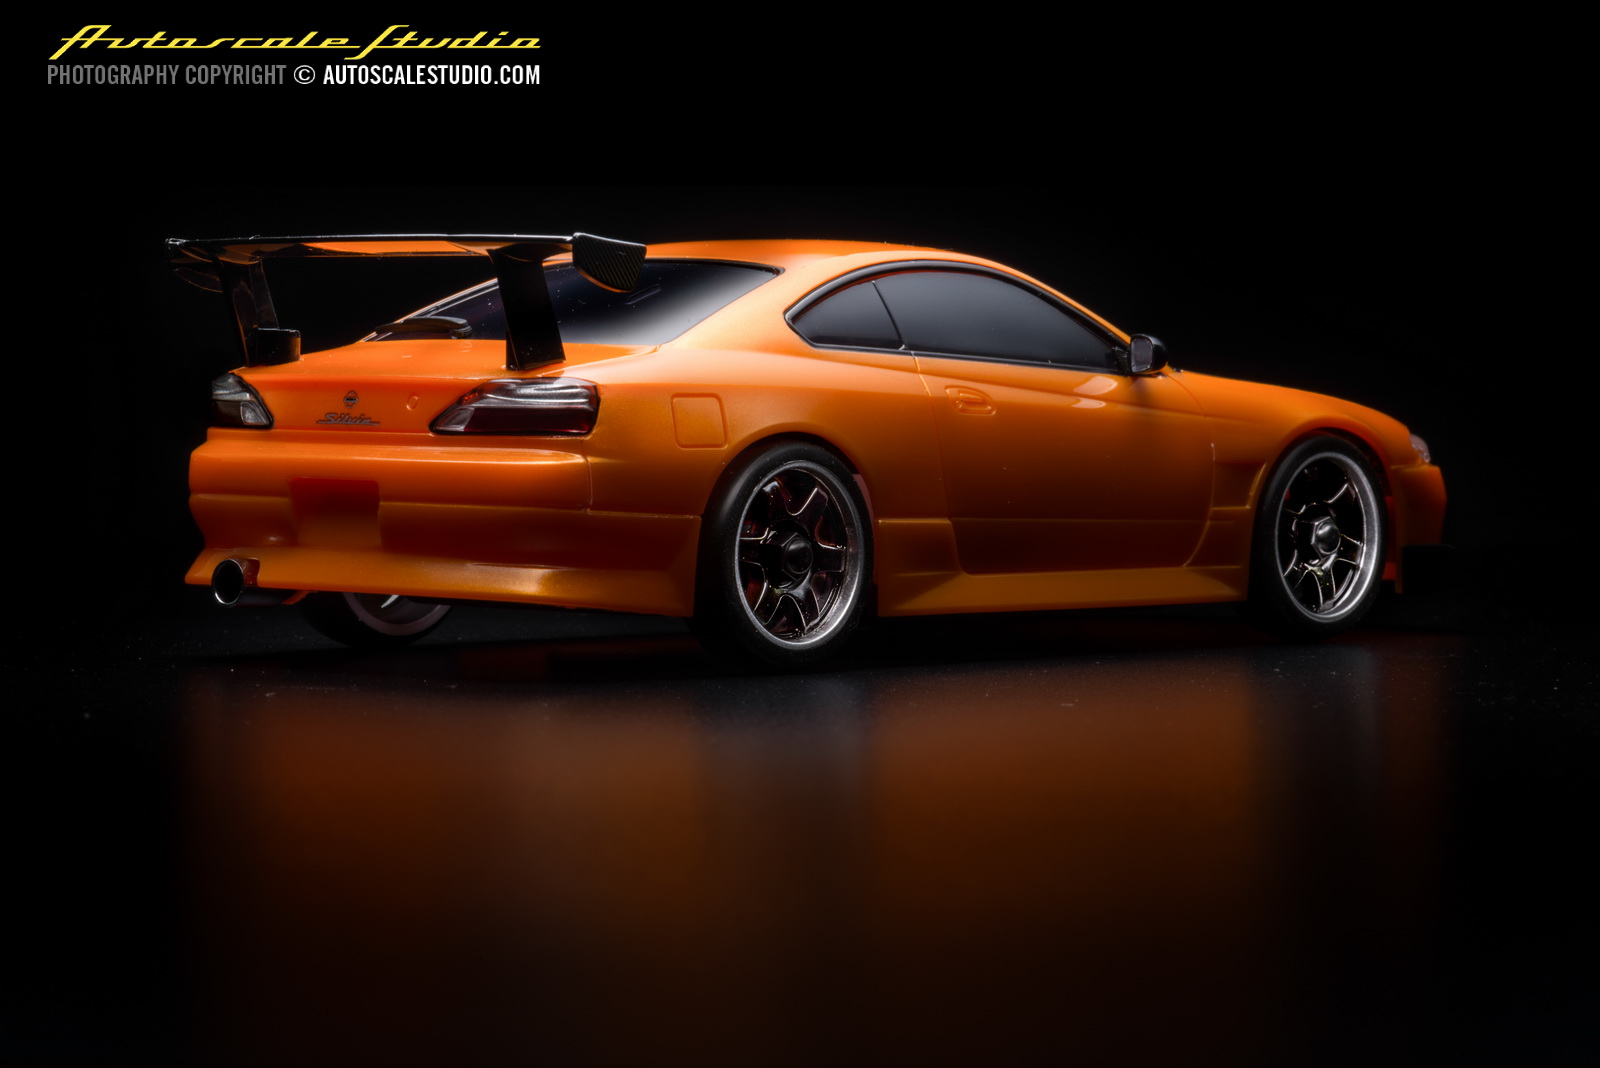 mzp413mo nissan silvia s15 gt wing metallic orange autoscale studio. Black Bedroom Furniture Sets. Home Design Ideas